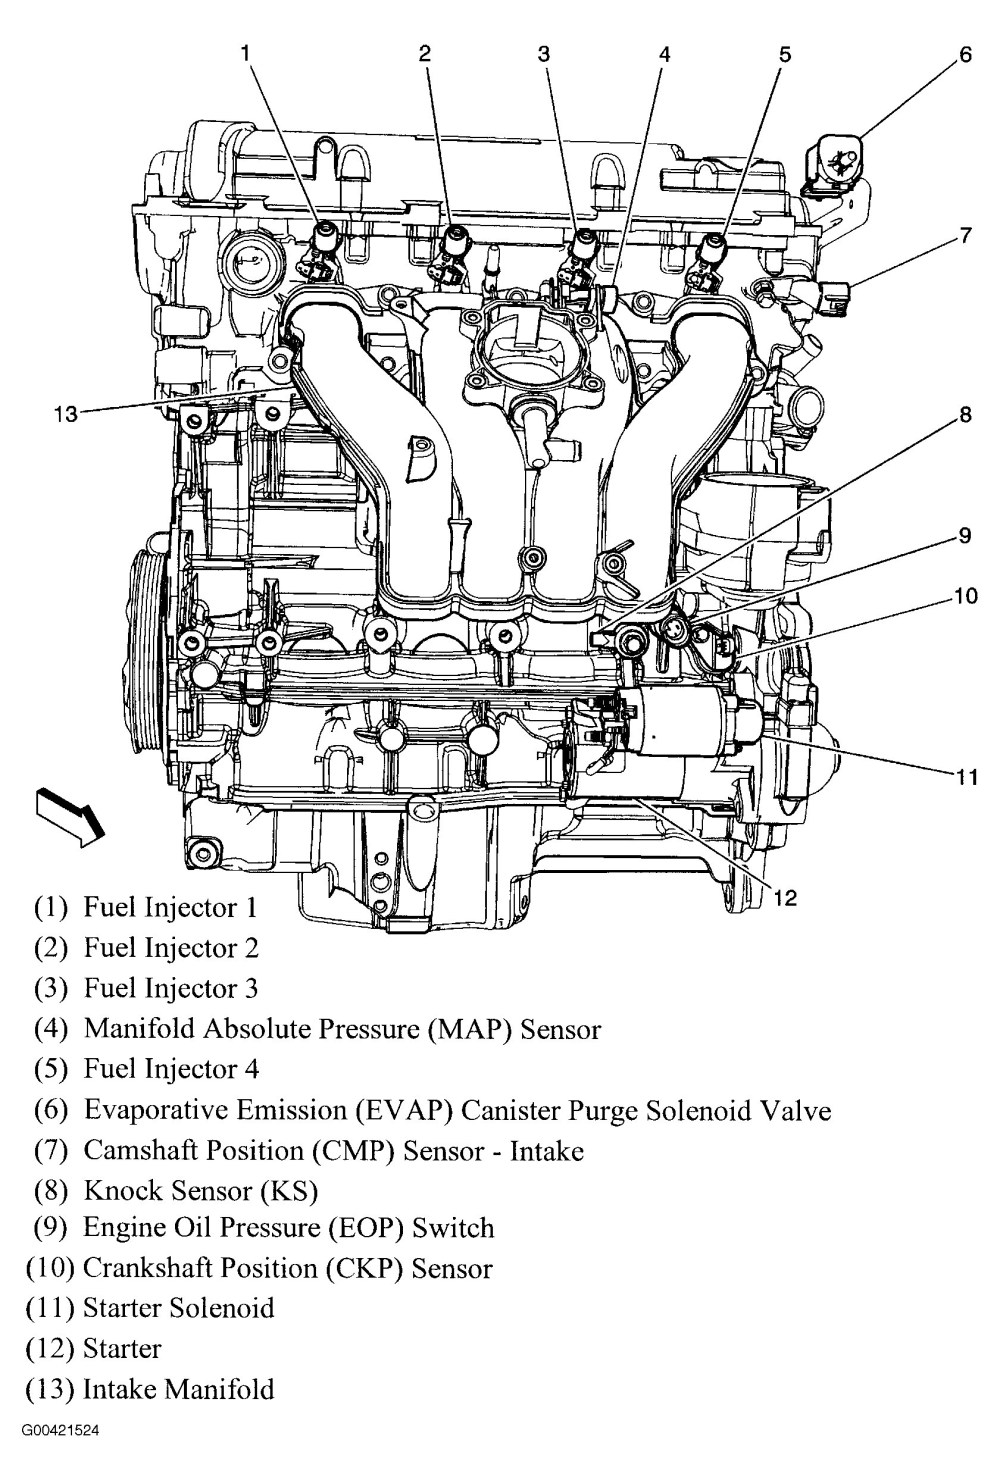 medium resolution of 2011 chevy aveo engine diagram thermostat wiring diagram 2011 chevy aveo engine diagram wiring library diagram